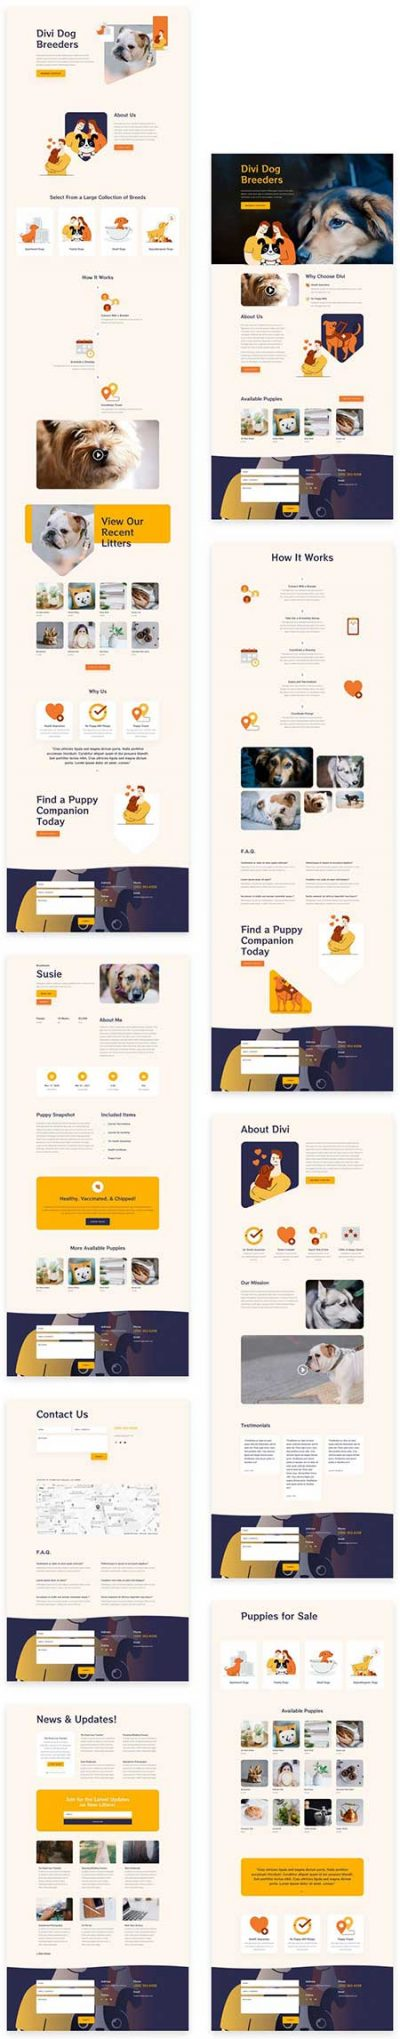 Divi dog breeder website templates